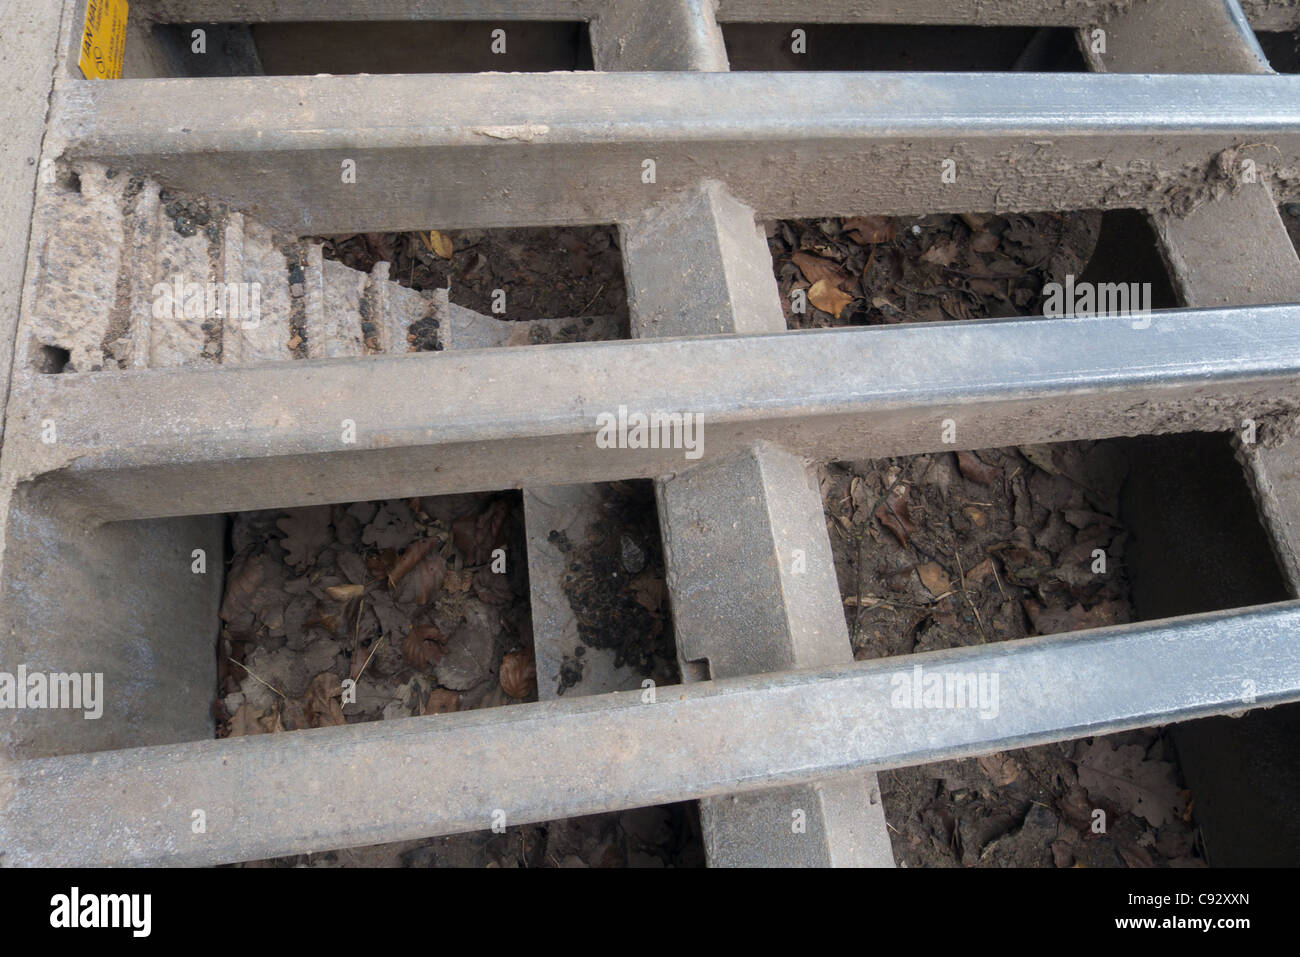 A hedgehog escape ladder in a cattle grid - Stock Image